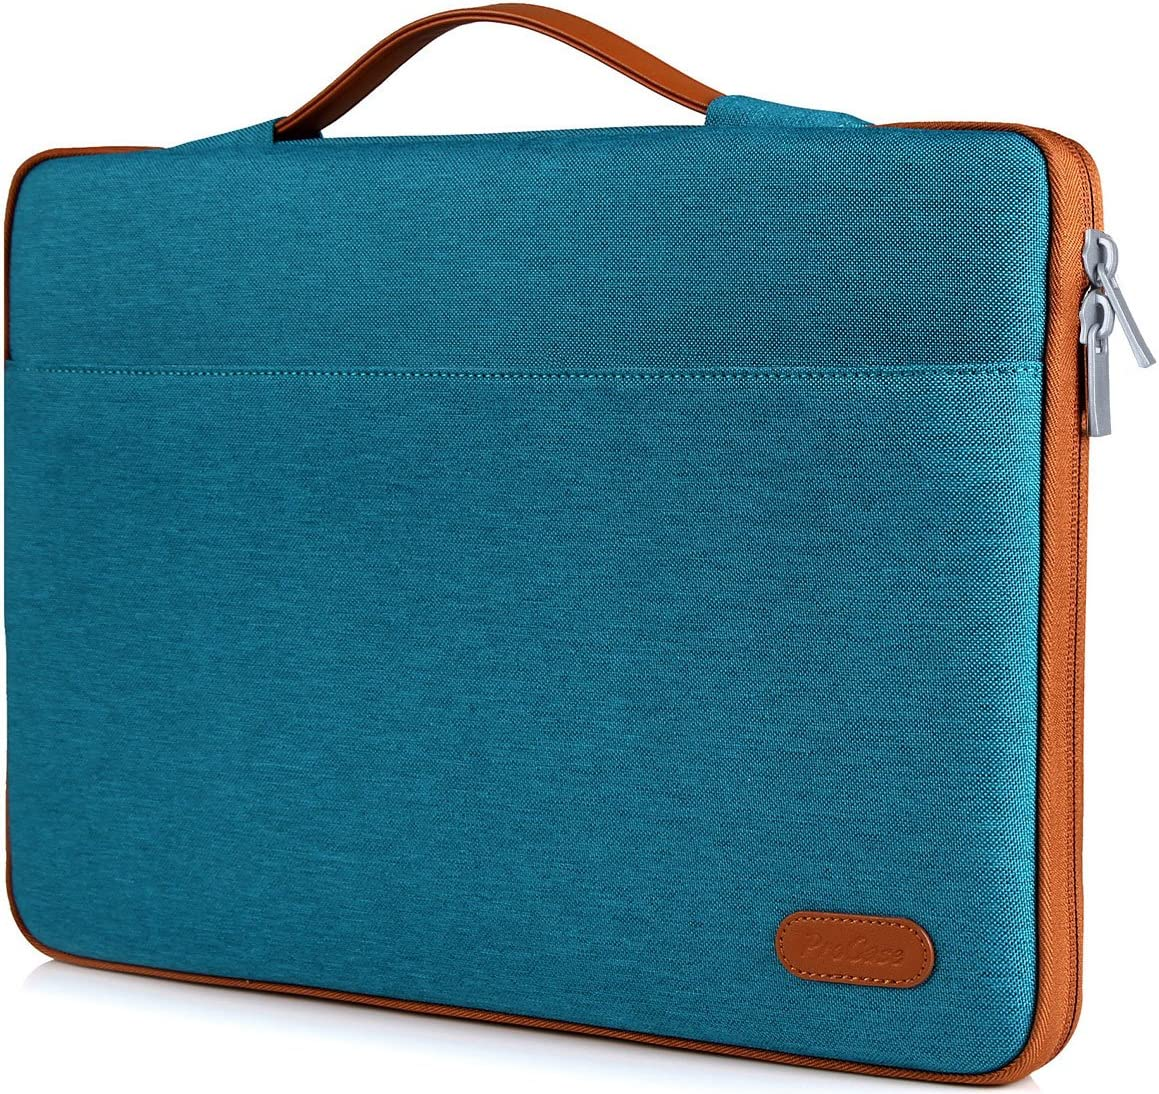 "ProCase 14-15.6 Inch Laptop Sleeve Case Protective Bag, Ultrabook Notebook Carrying Case Handbag for 14"" 15"" Samsung Sony Asus Acer Lenovo Dell HP Toshiba Chromebook Computers -Teal"